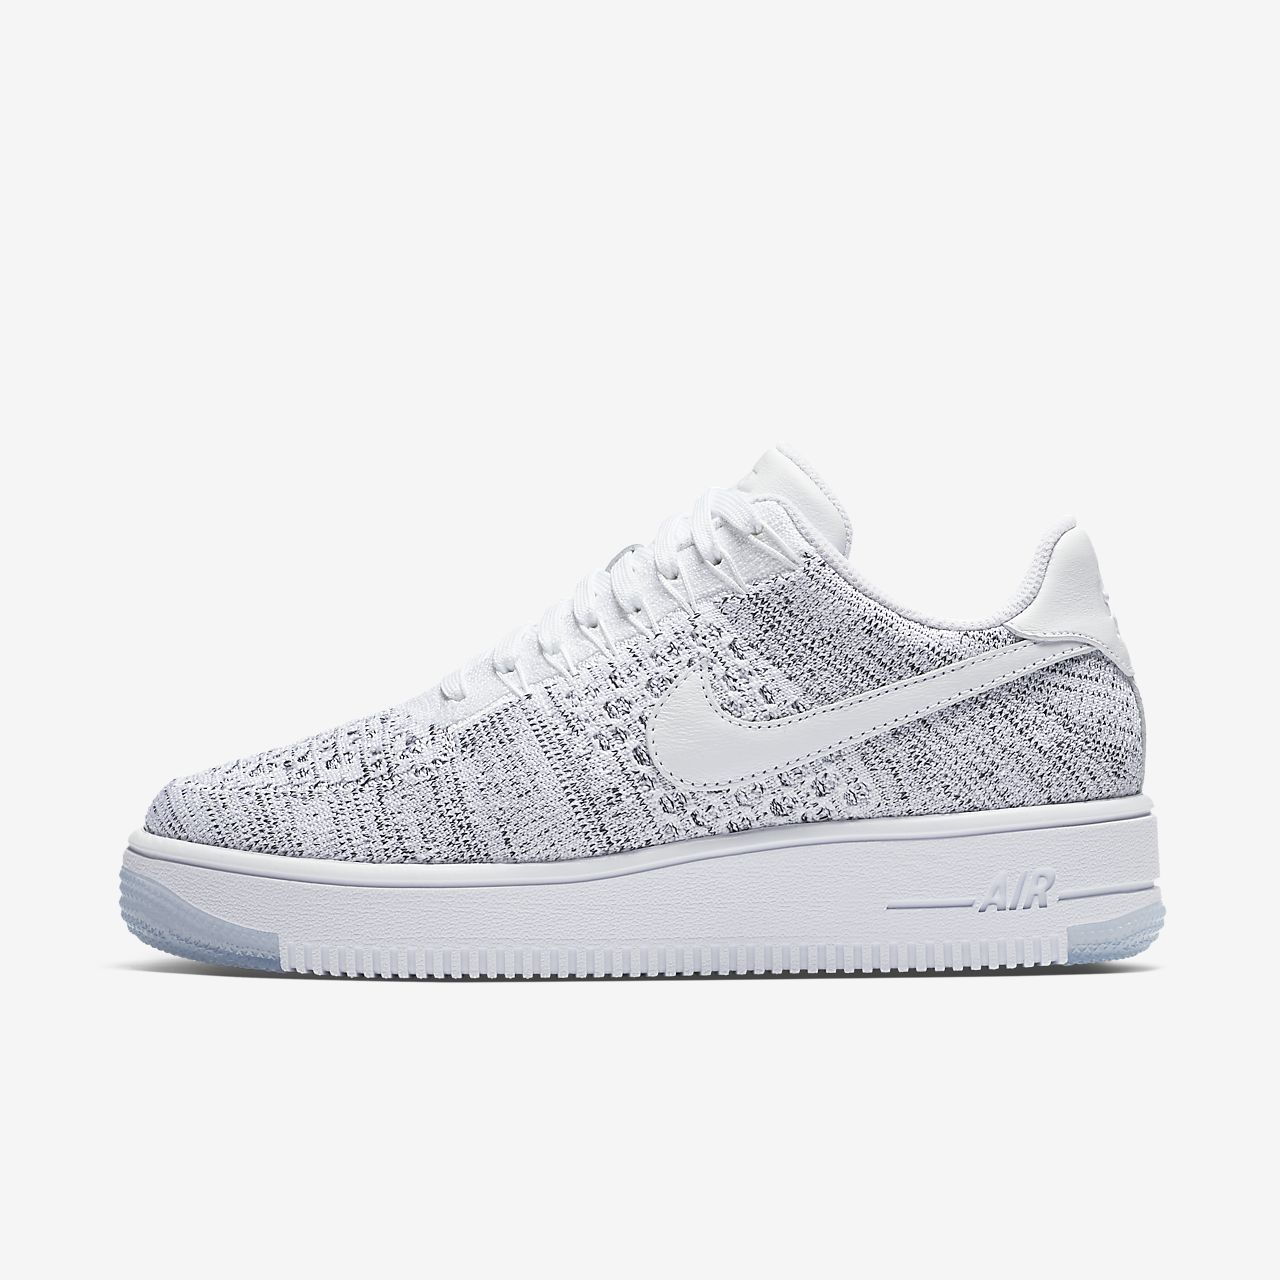 air force 1 low nz